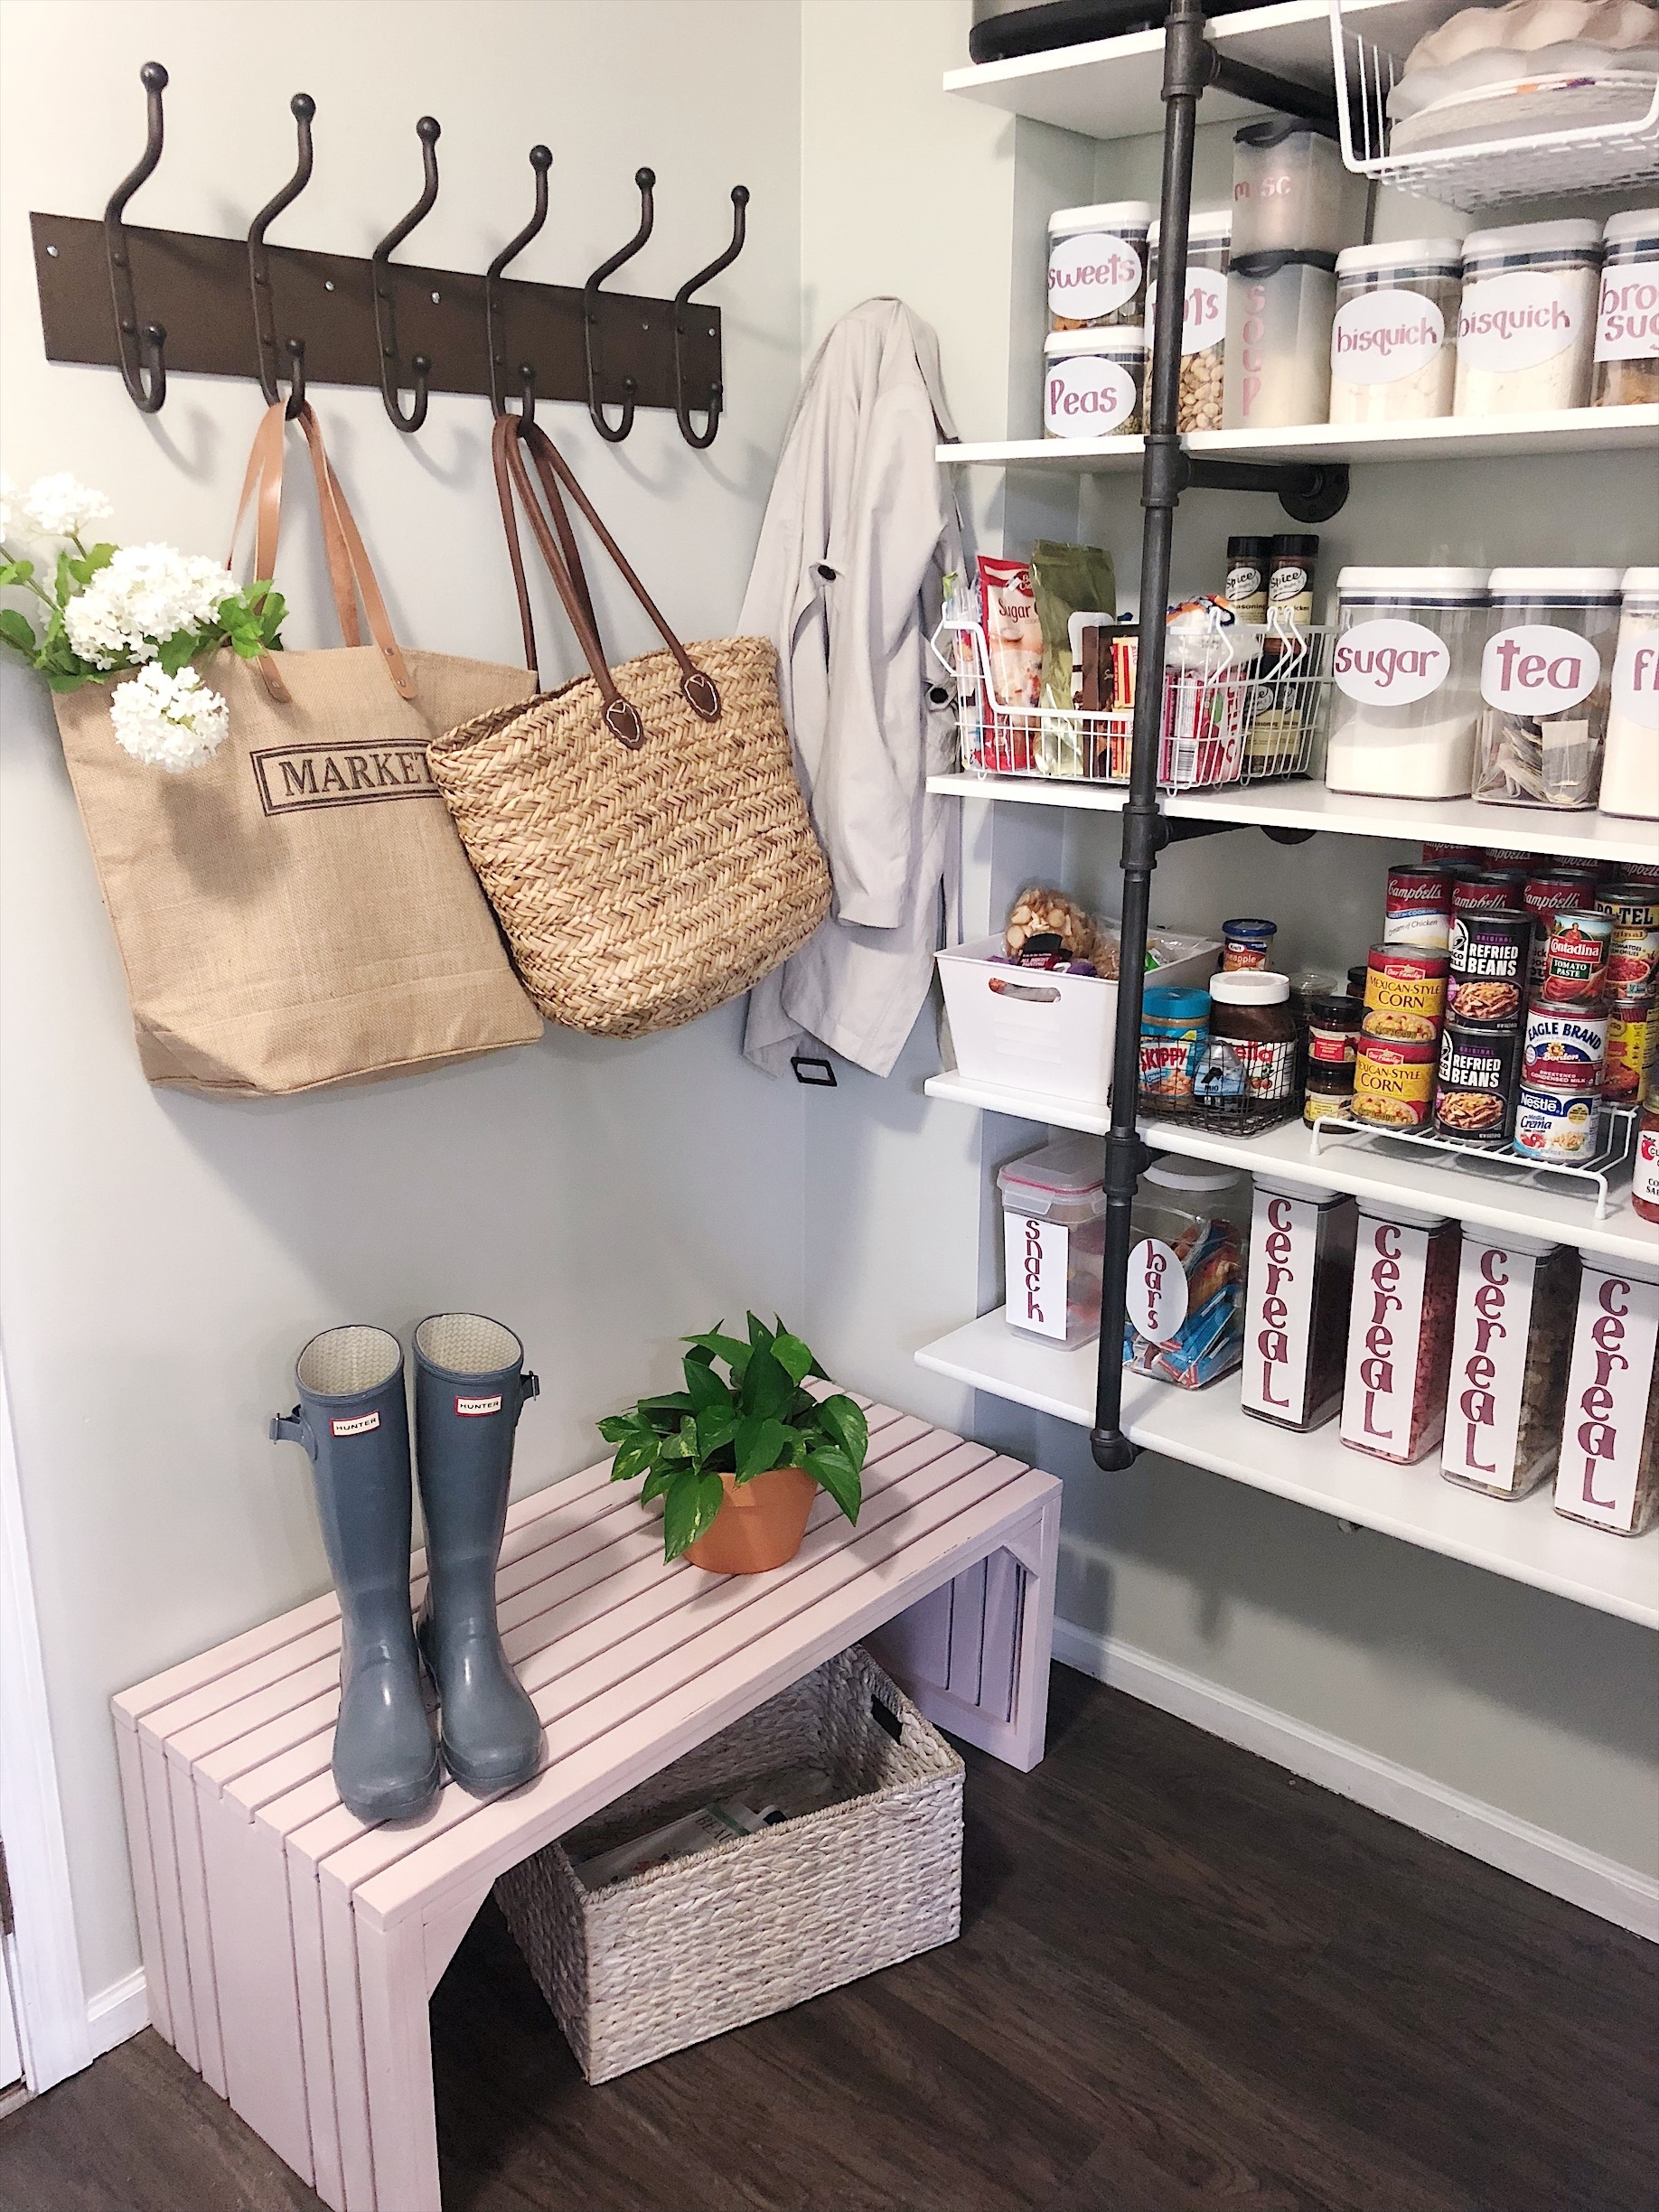 Pantry Organization made pretty!